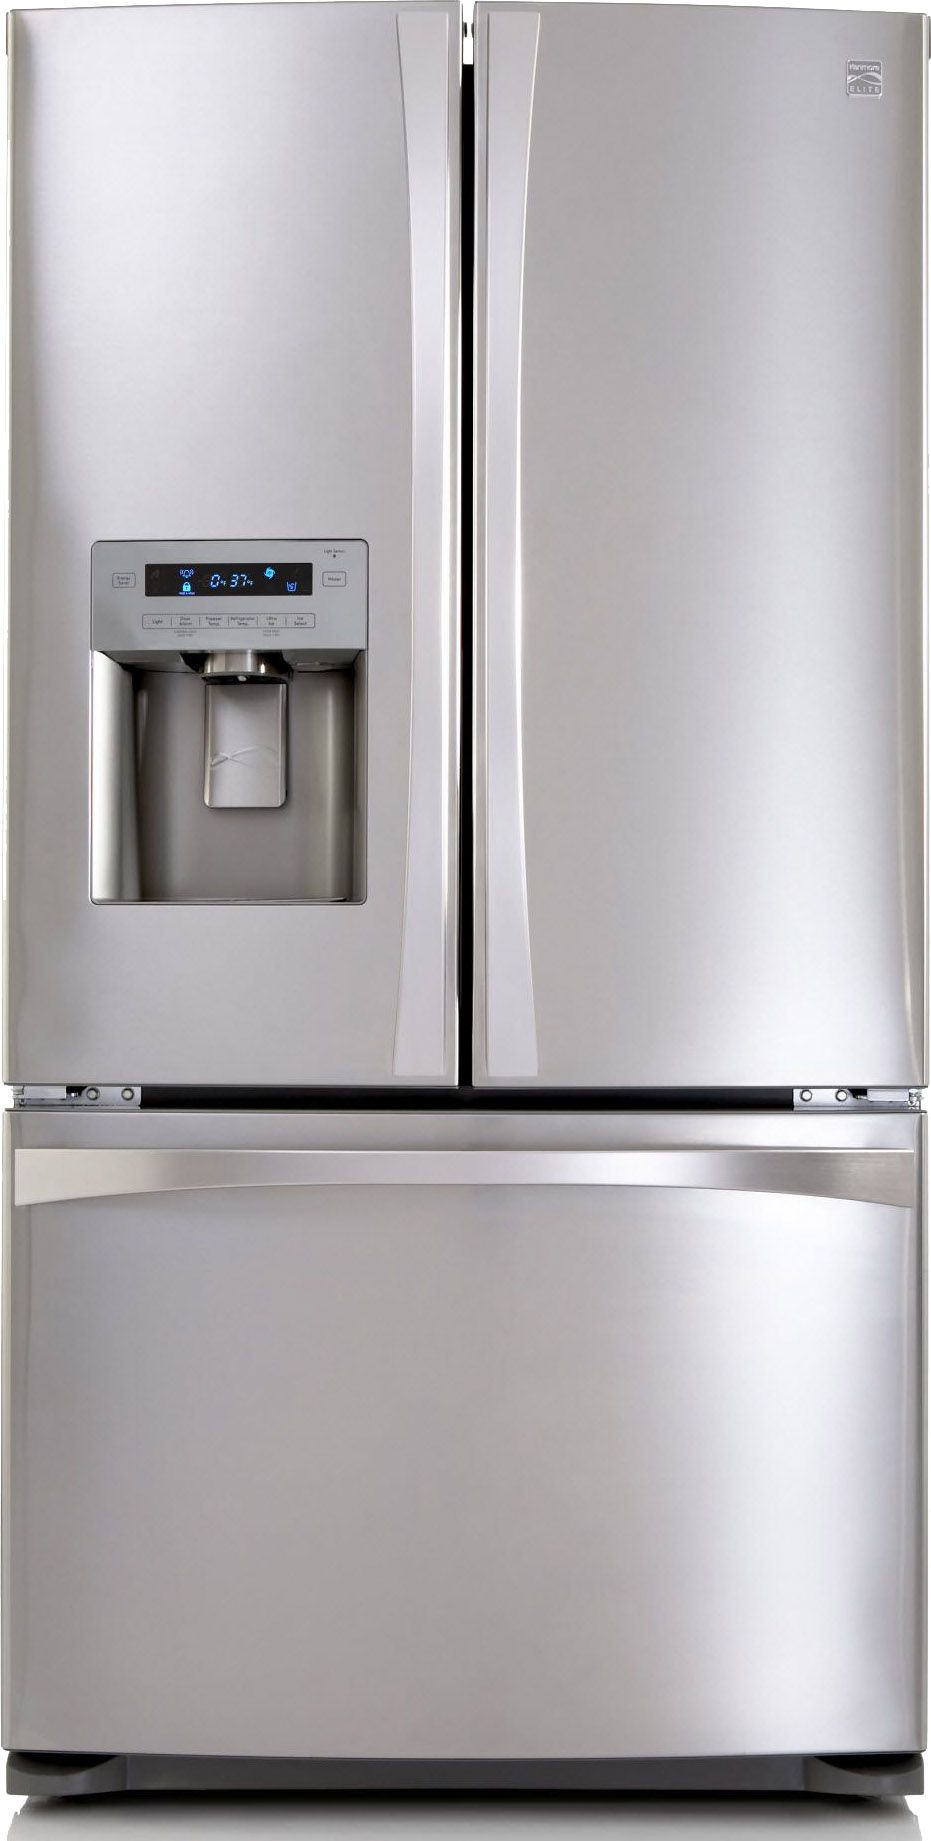 Kenmore Elite French Door Refrigerator: Cool Style and Storage at ...